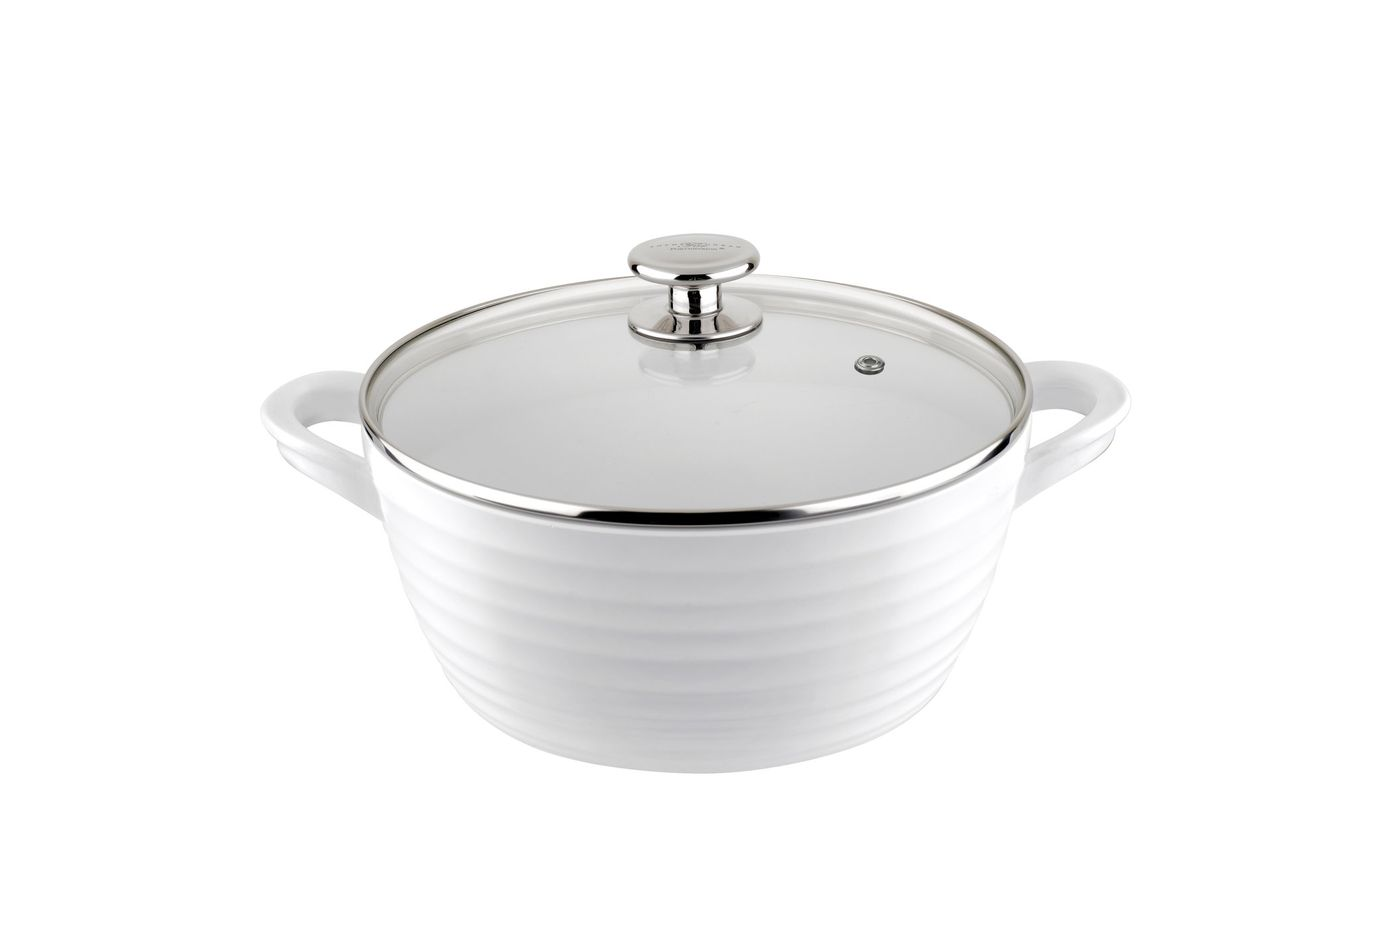 Sophie Conran for Portmeirion Cookware Casserole Dish + Lid Large - White. Metal body with ceramic coating. thumb 1